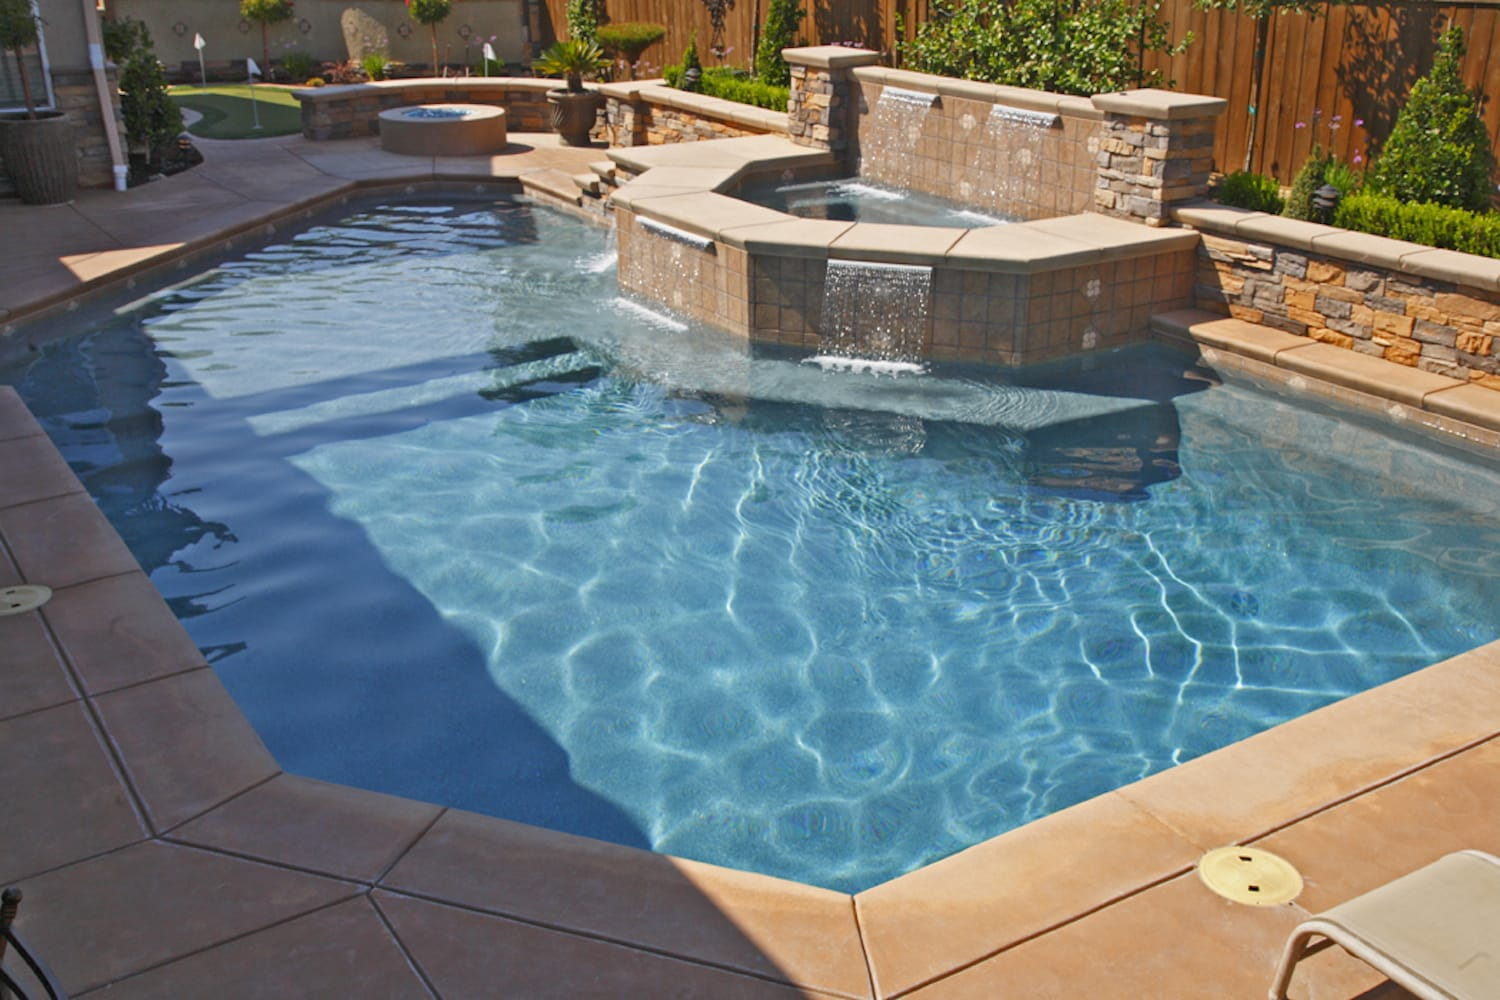 satin-matrix-tahitian-tropical-pool-finish-3